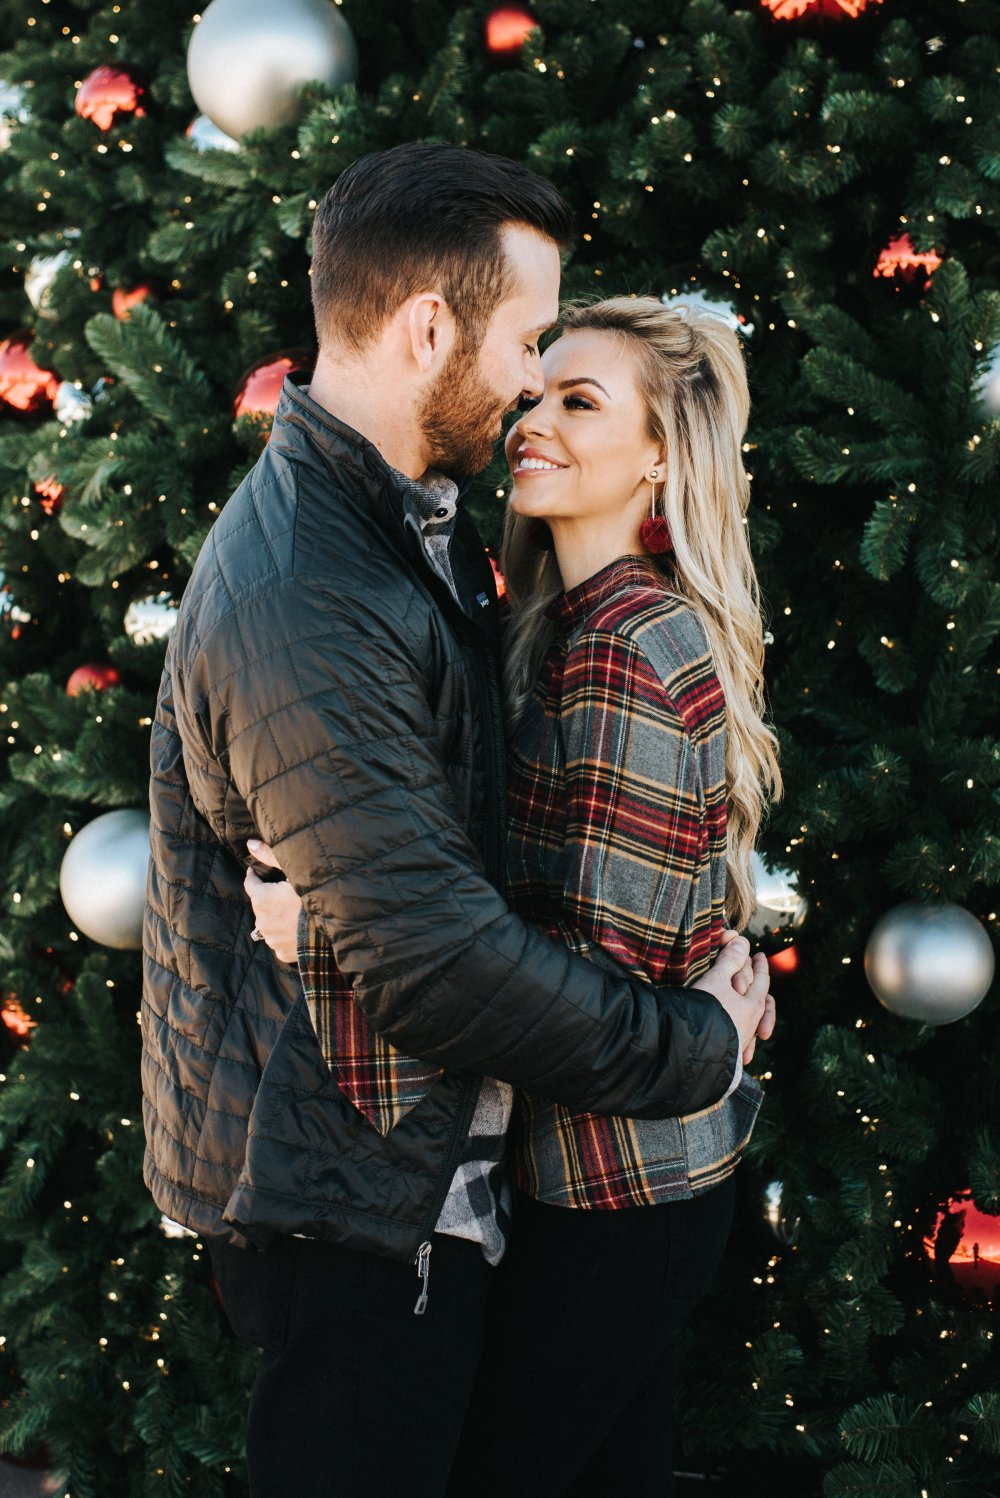 Holiday looks for couples! Plaid options for men and women! Patagonia men's jacket perfect for cooler weather! #trulydestiny #holidayoutifts #couplepictures